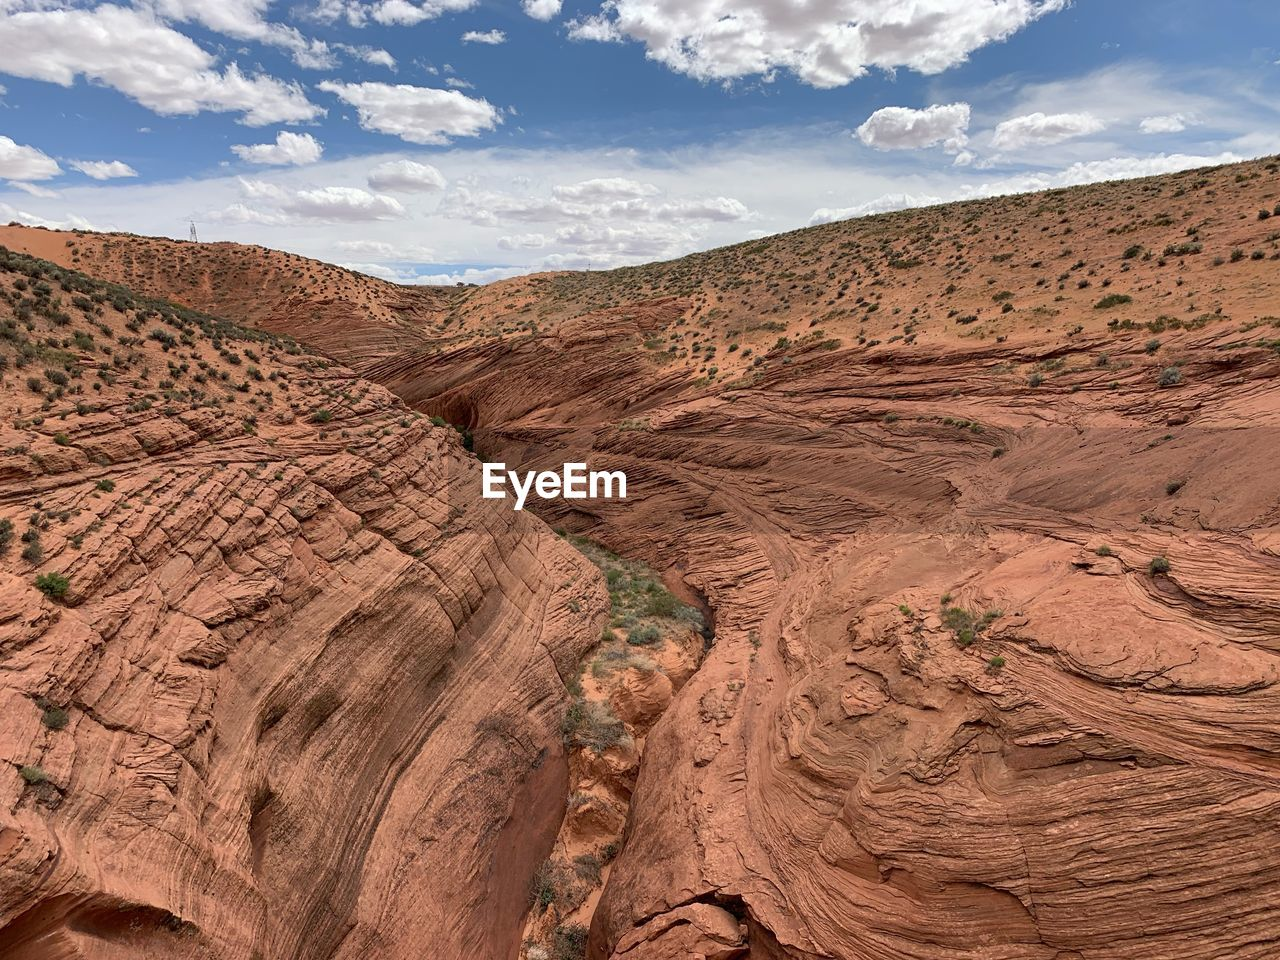 scenics - nature, non-urban scene, sky, beauty in nature, tranquil scene, cloud - sky, tranquility, landscape, rock, rock formation, geology, environment, physical geography, rock - object, arid climate, climate, remote, no people, mountain, nature, outdoors, formation, eroded